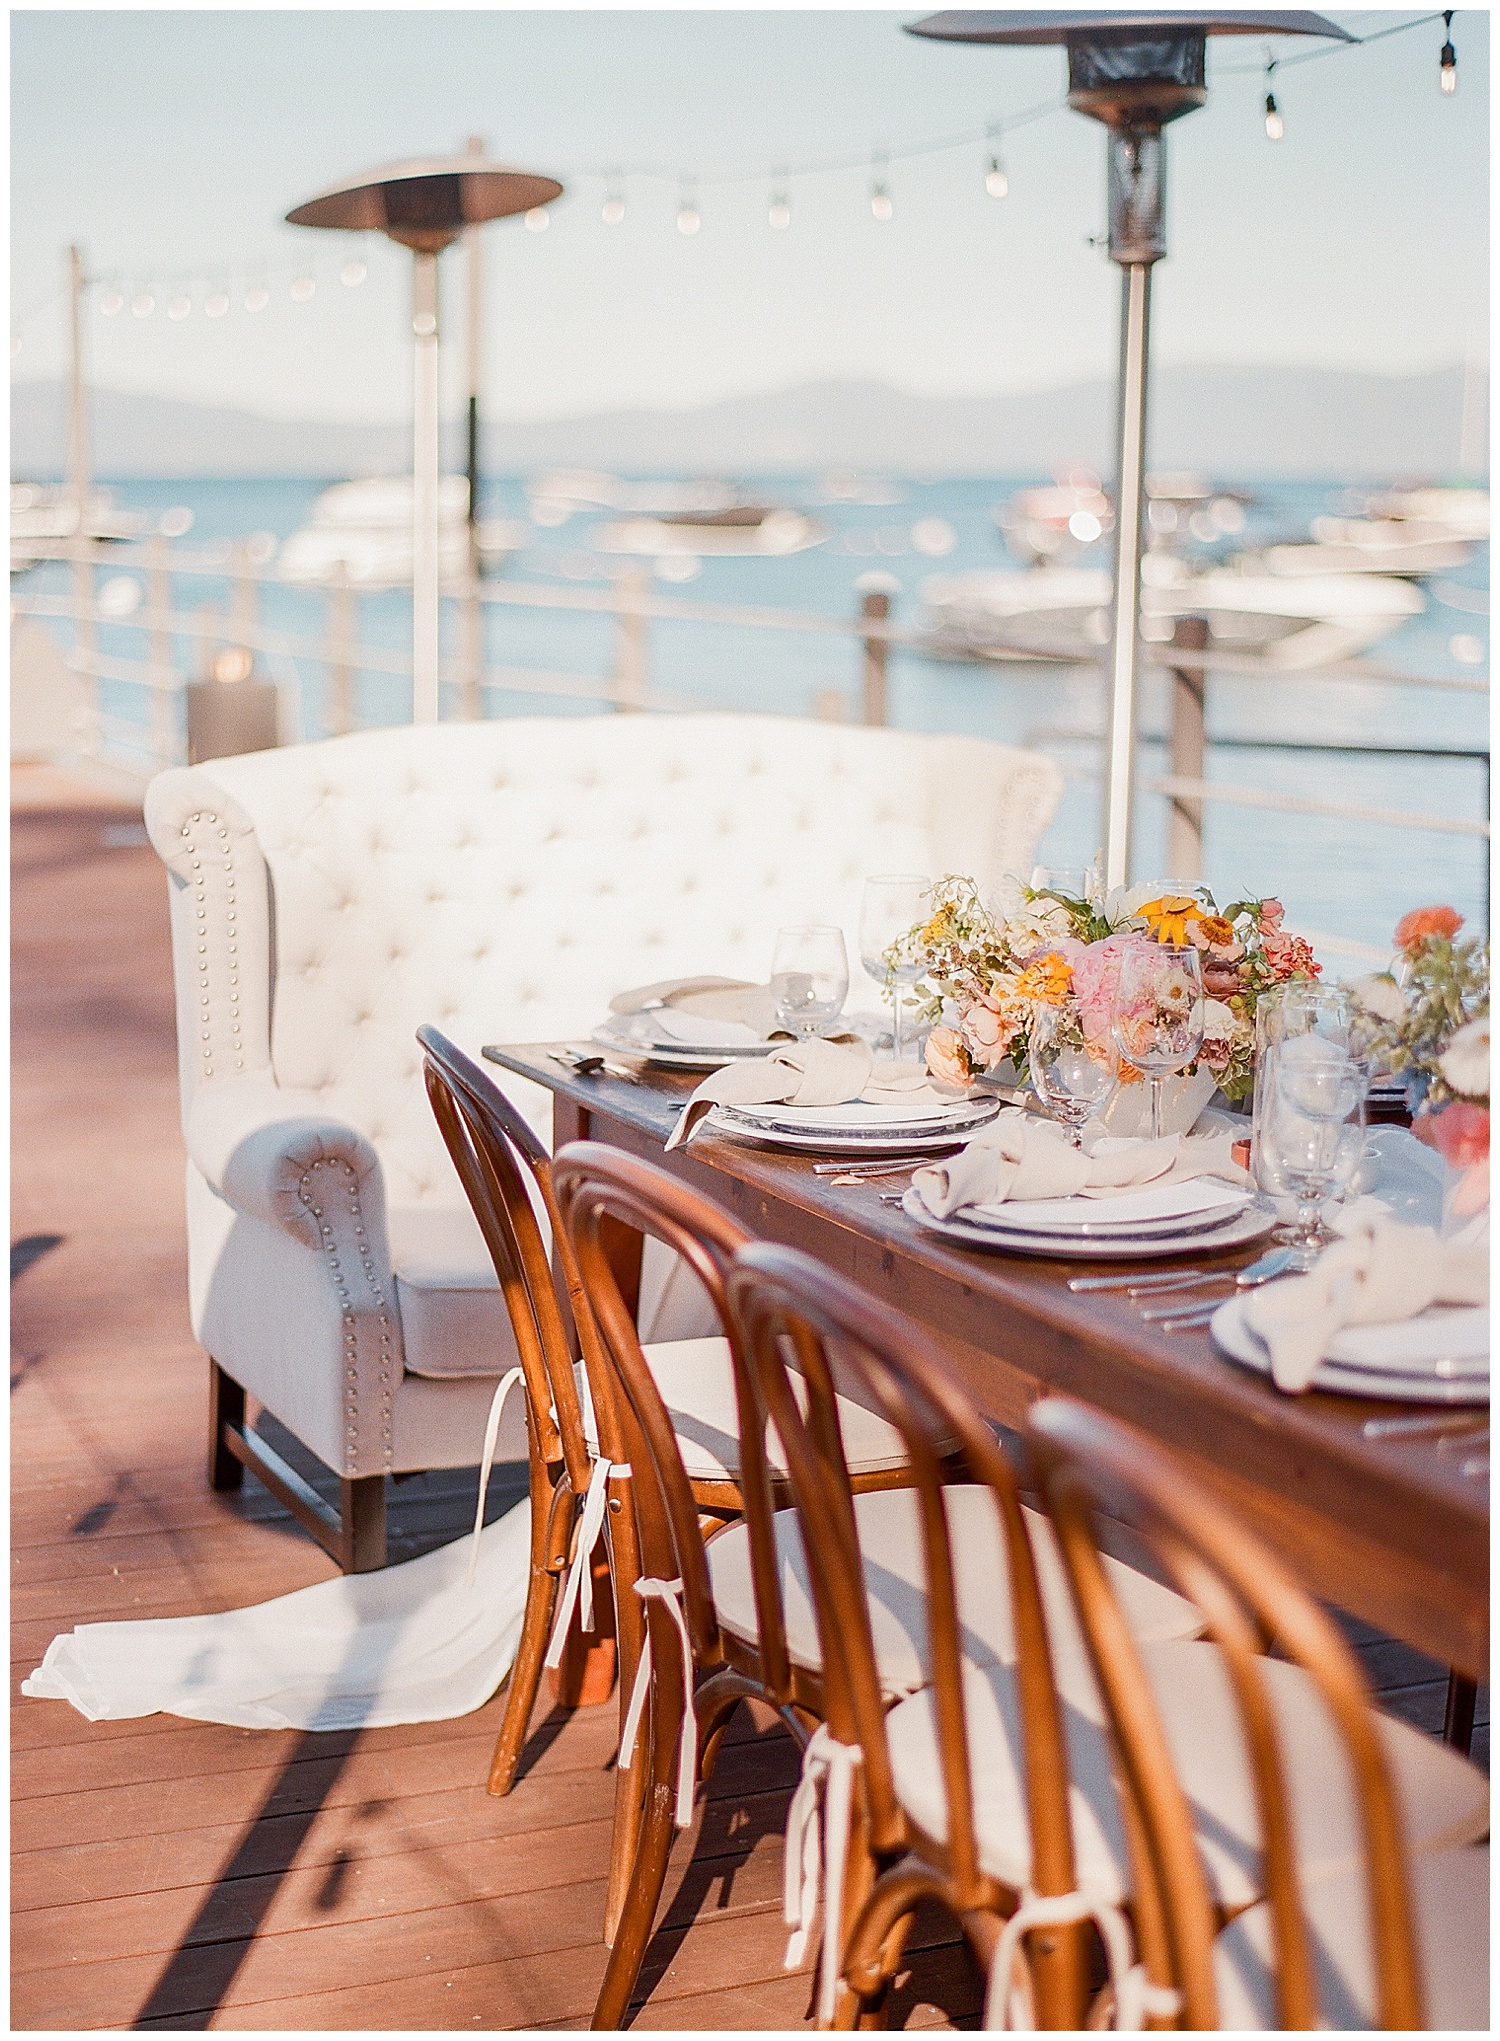 Janine_Licare_Photography_San_Francisco_Wedding_Photographer_Lake_Tahoe_West_Shore_Cafe_Colorful_Summer_0044.jpg